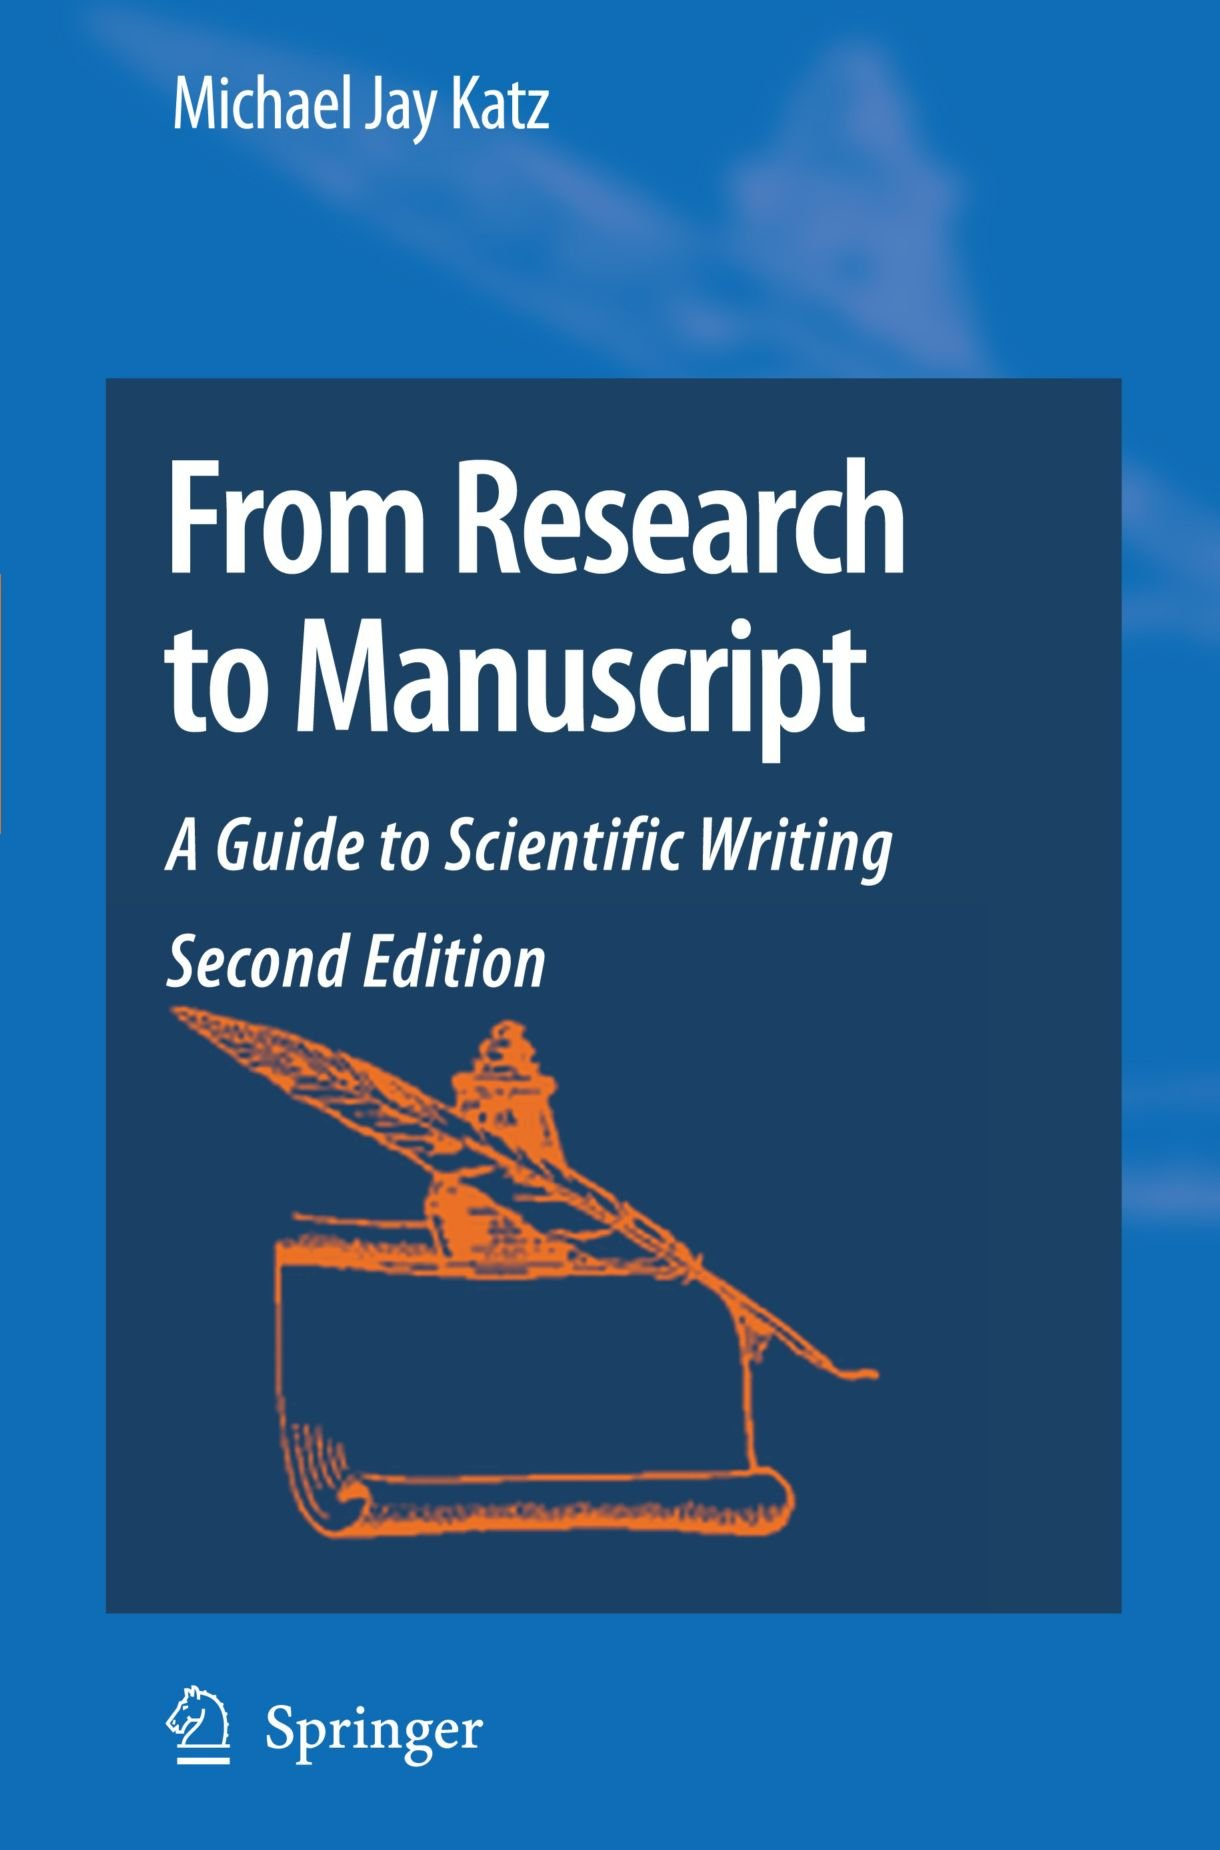 From Research to Manuscript: A Guide to Scientific Writing by Springer